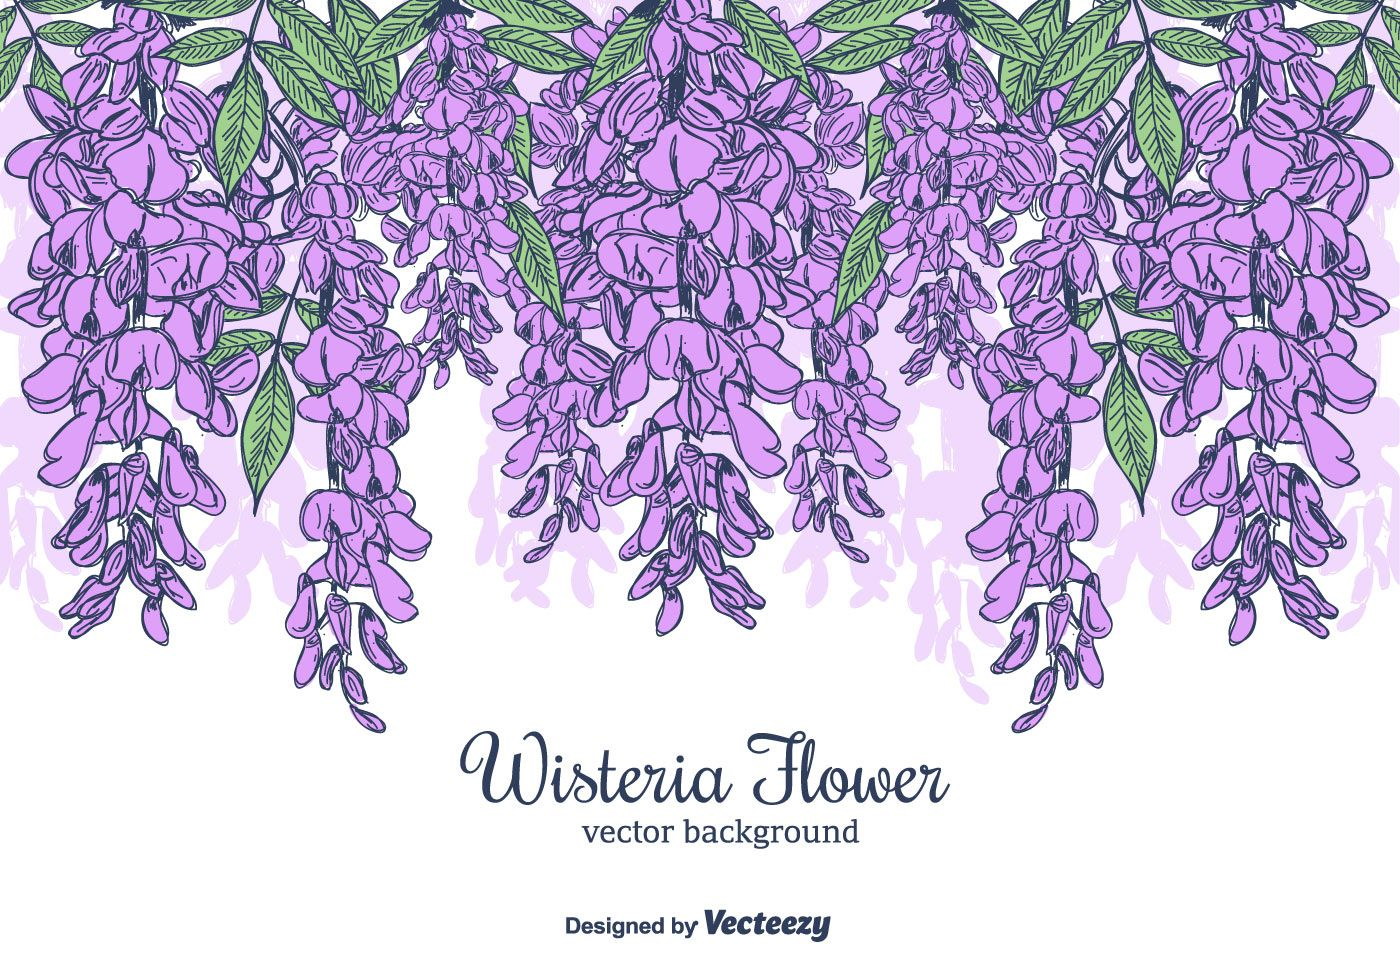 Beautiful Hand Drawn Backgound Full Of Hanging Wisteria Flower Great For Card Making Scrapbooking Wallpapers Vector Art Design How To Draw Hands Vector Art